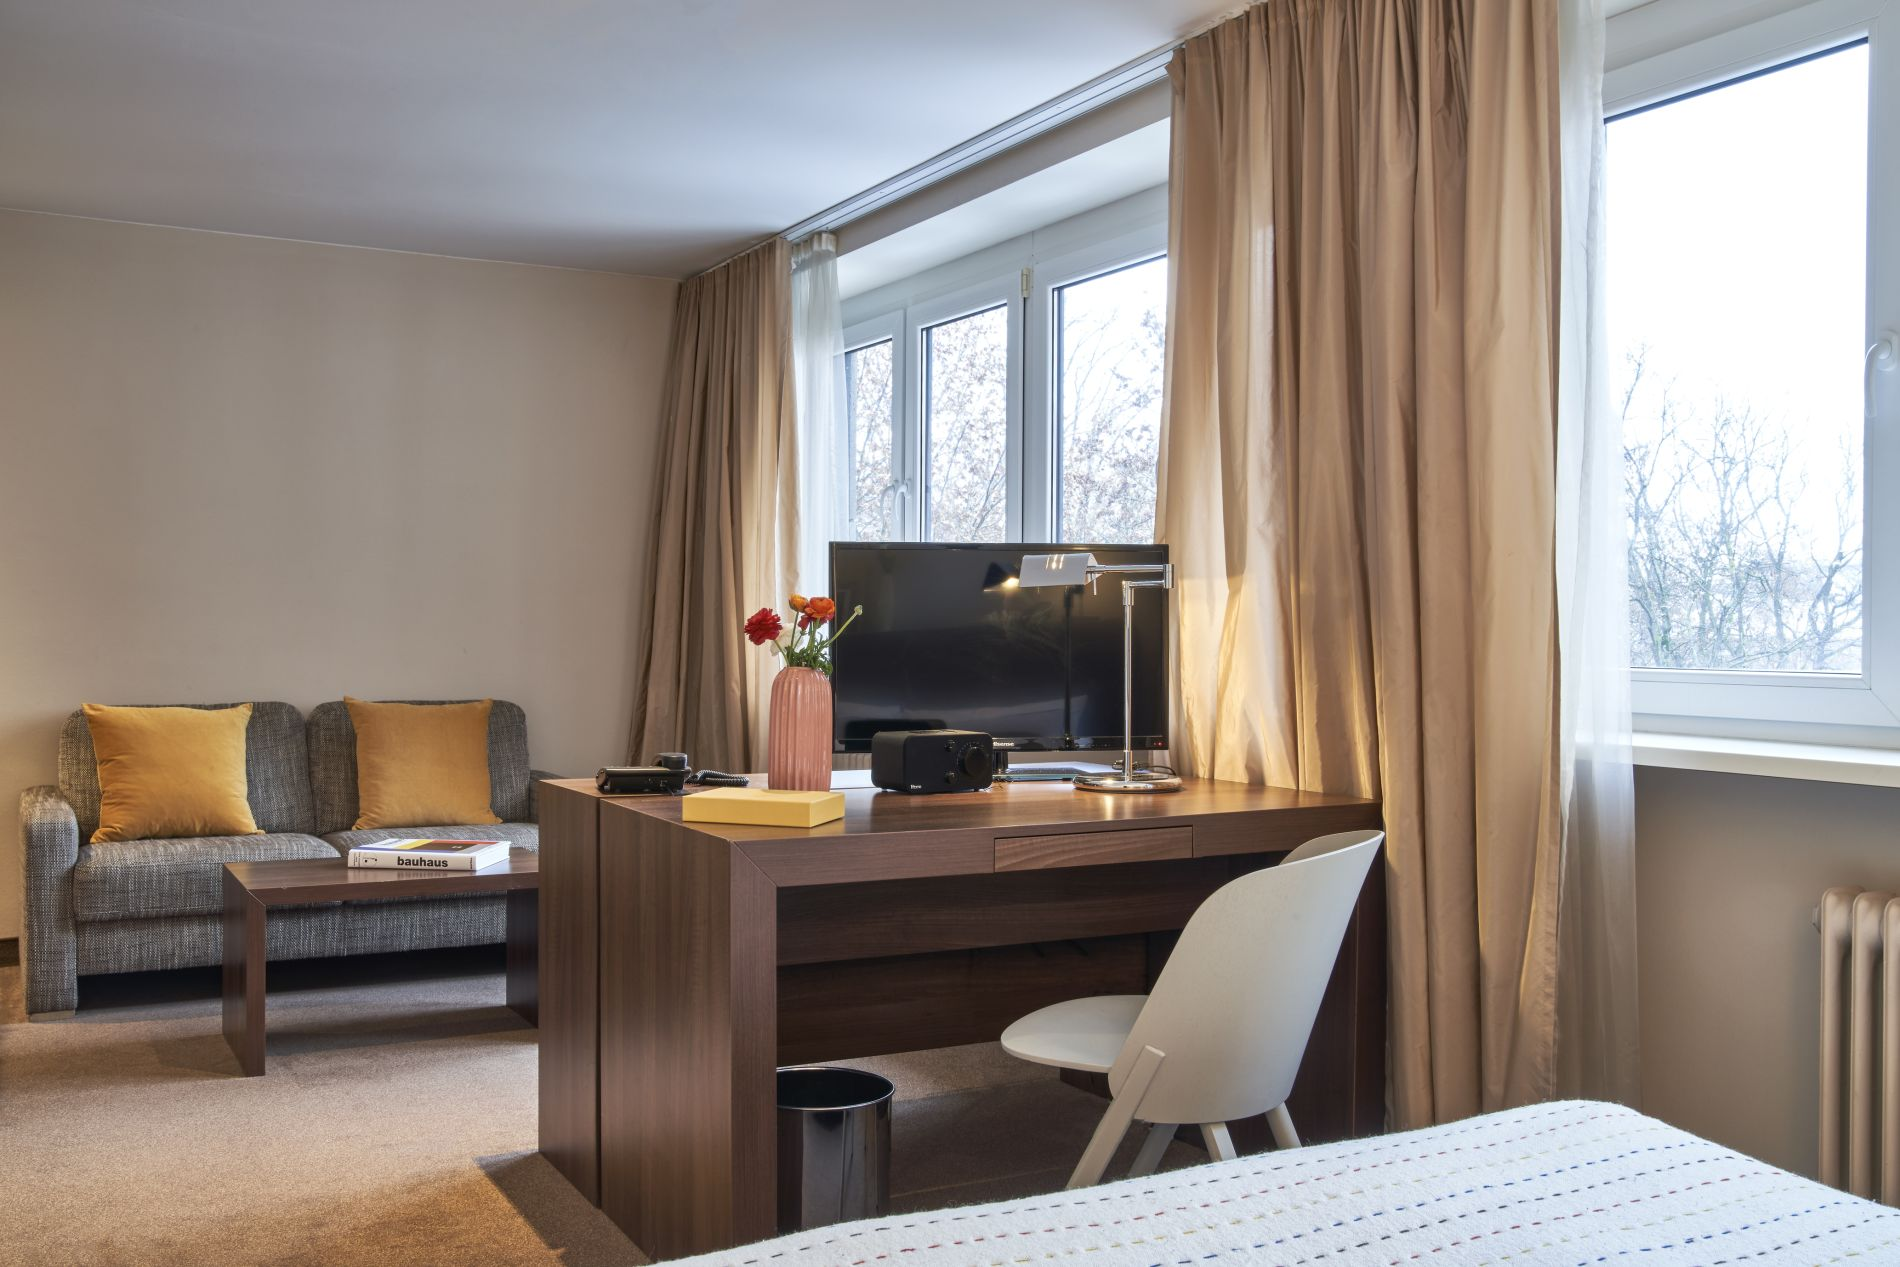 Serviced accommodation in the heart of Frankfurt with a gym in the building